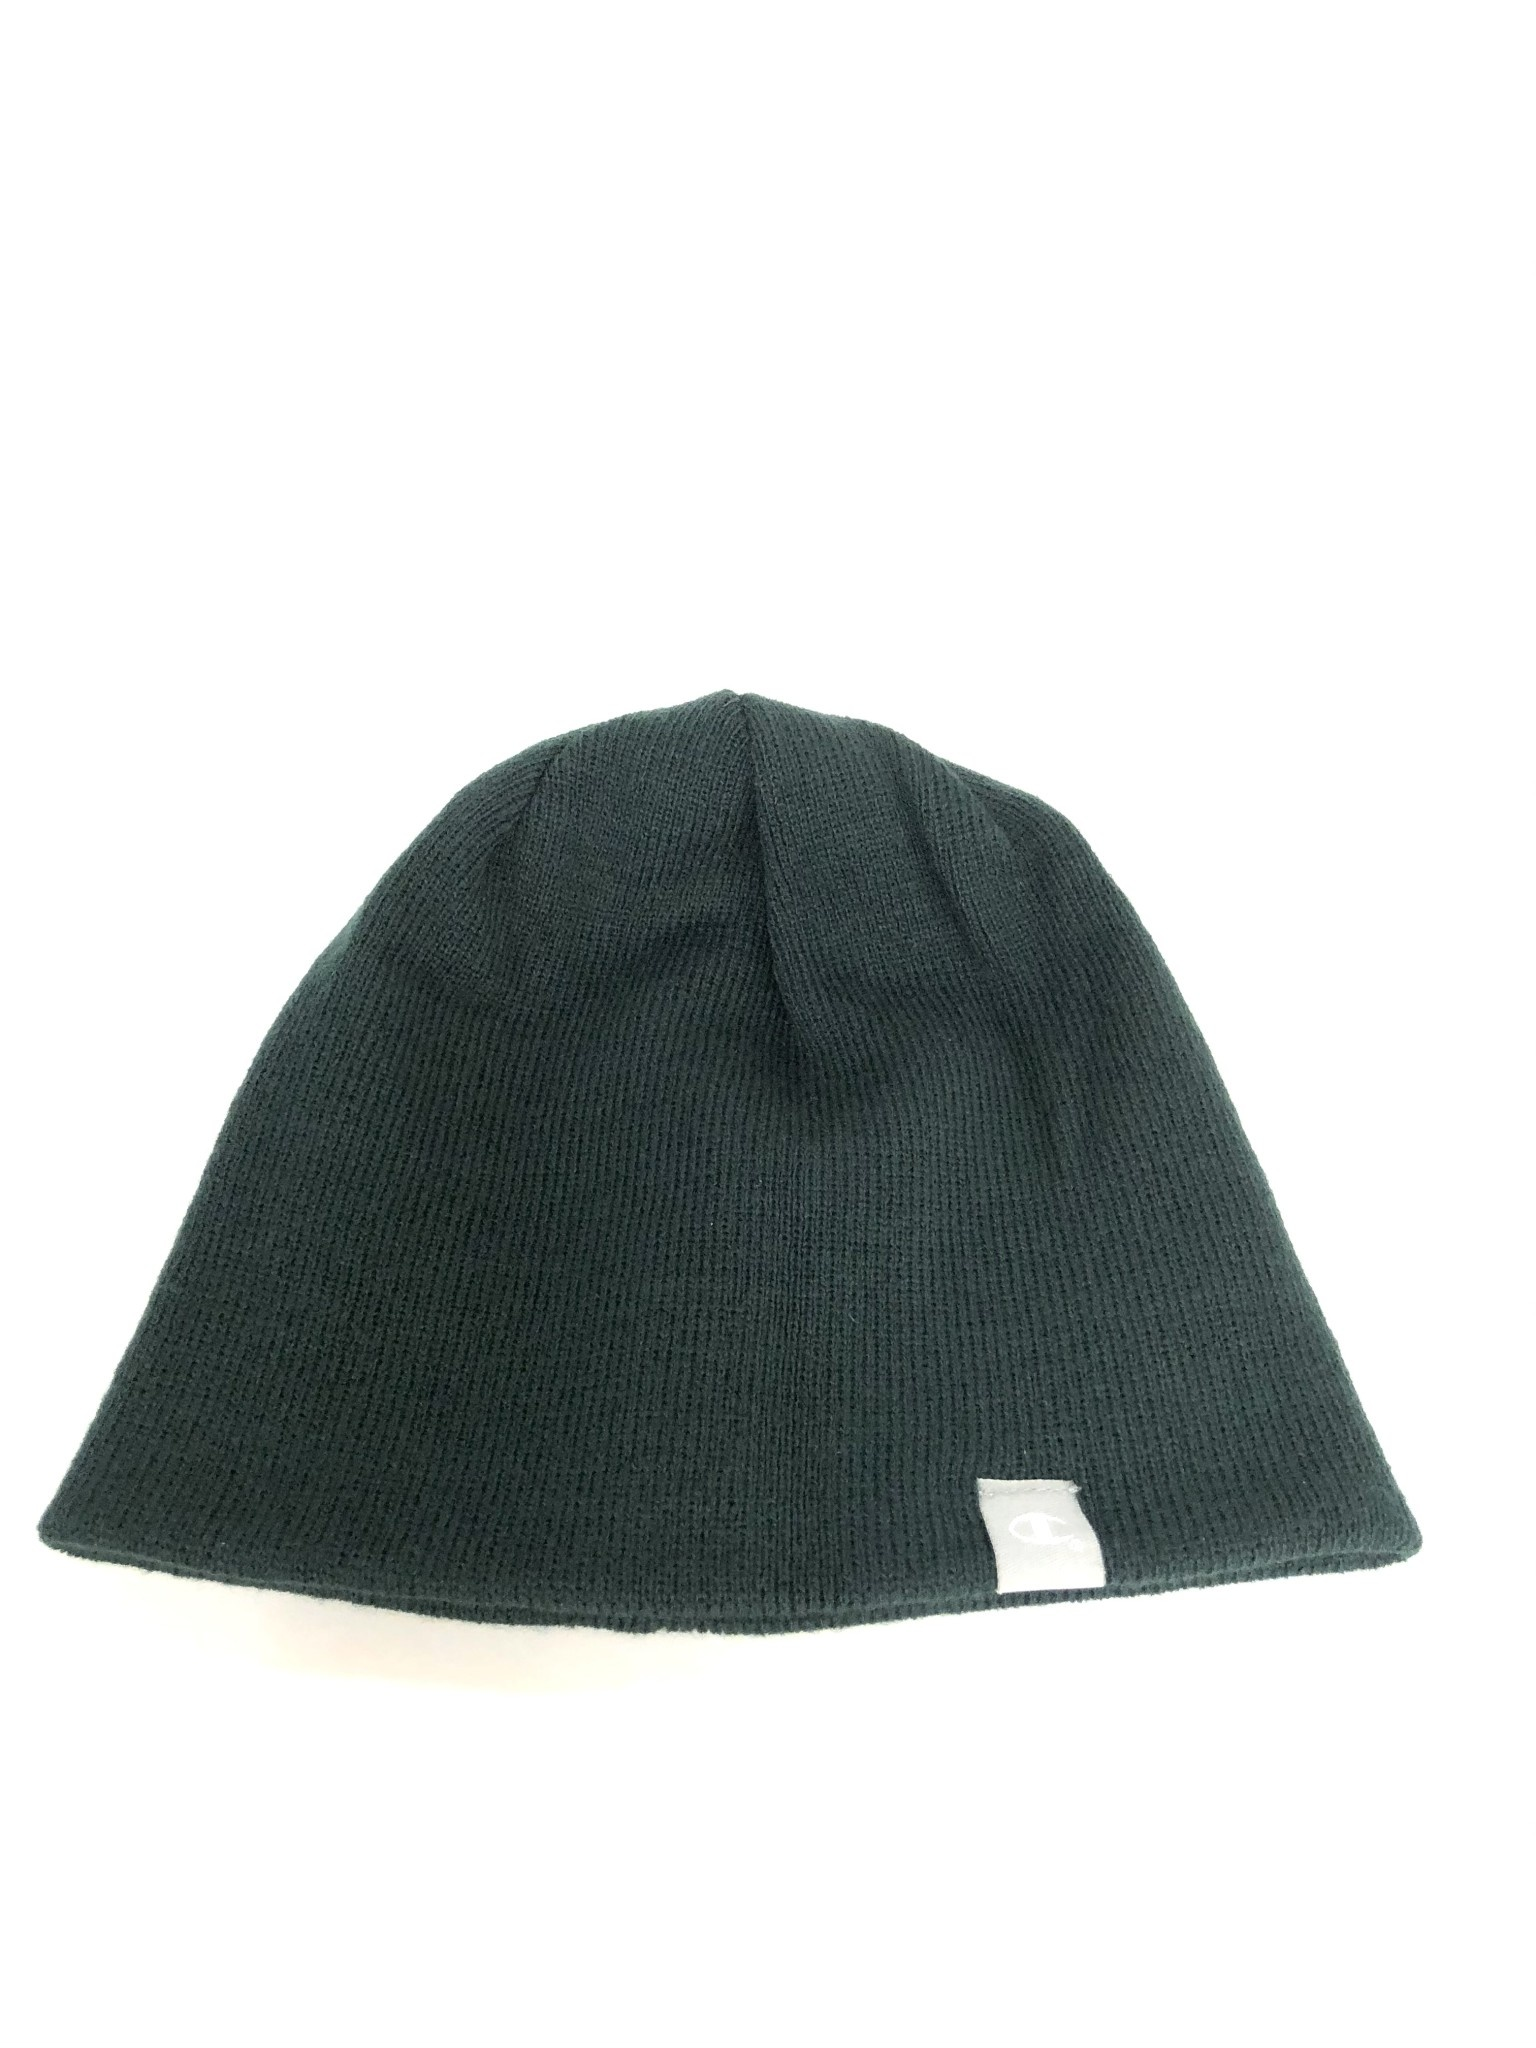 Champion Hat: Reversible Stripe Beanie - Green with Gold Stripe